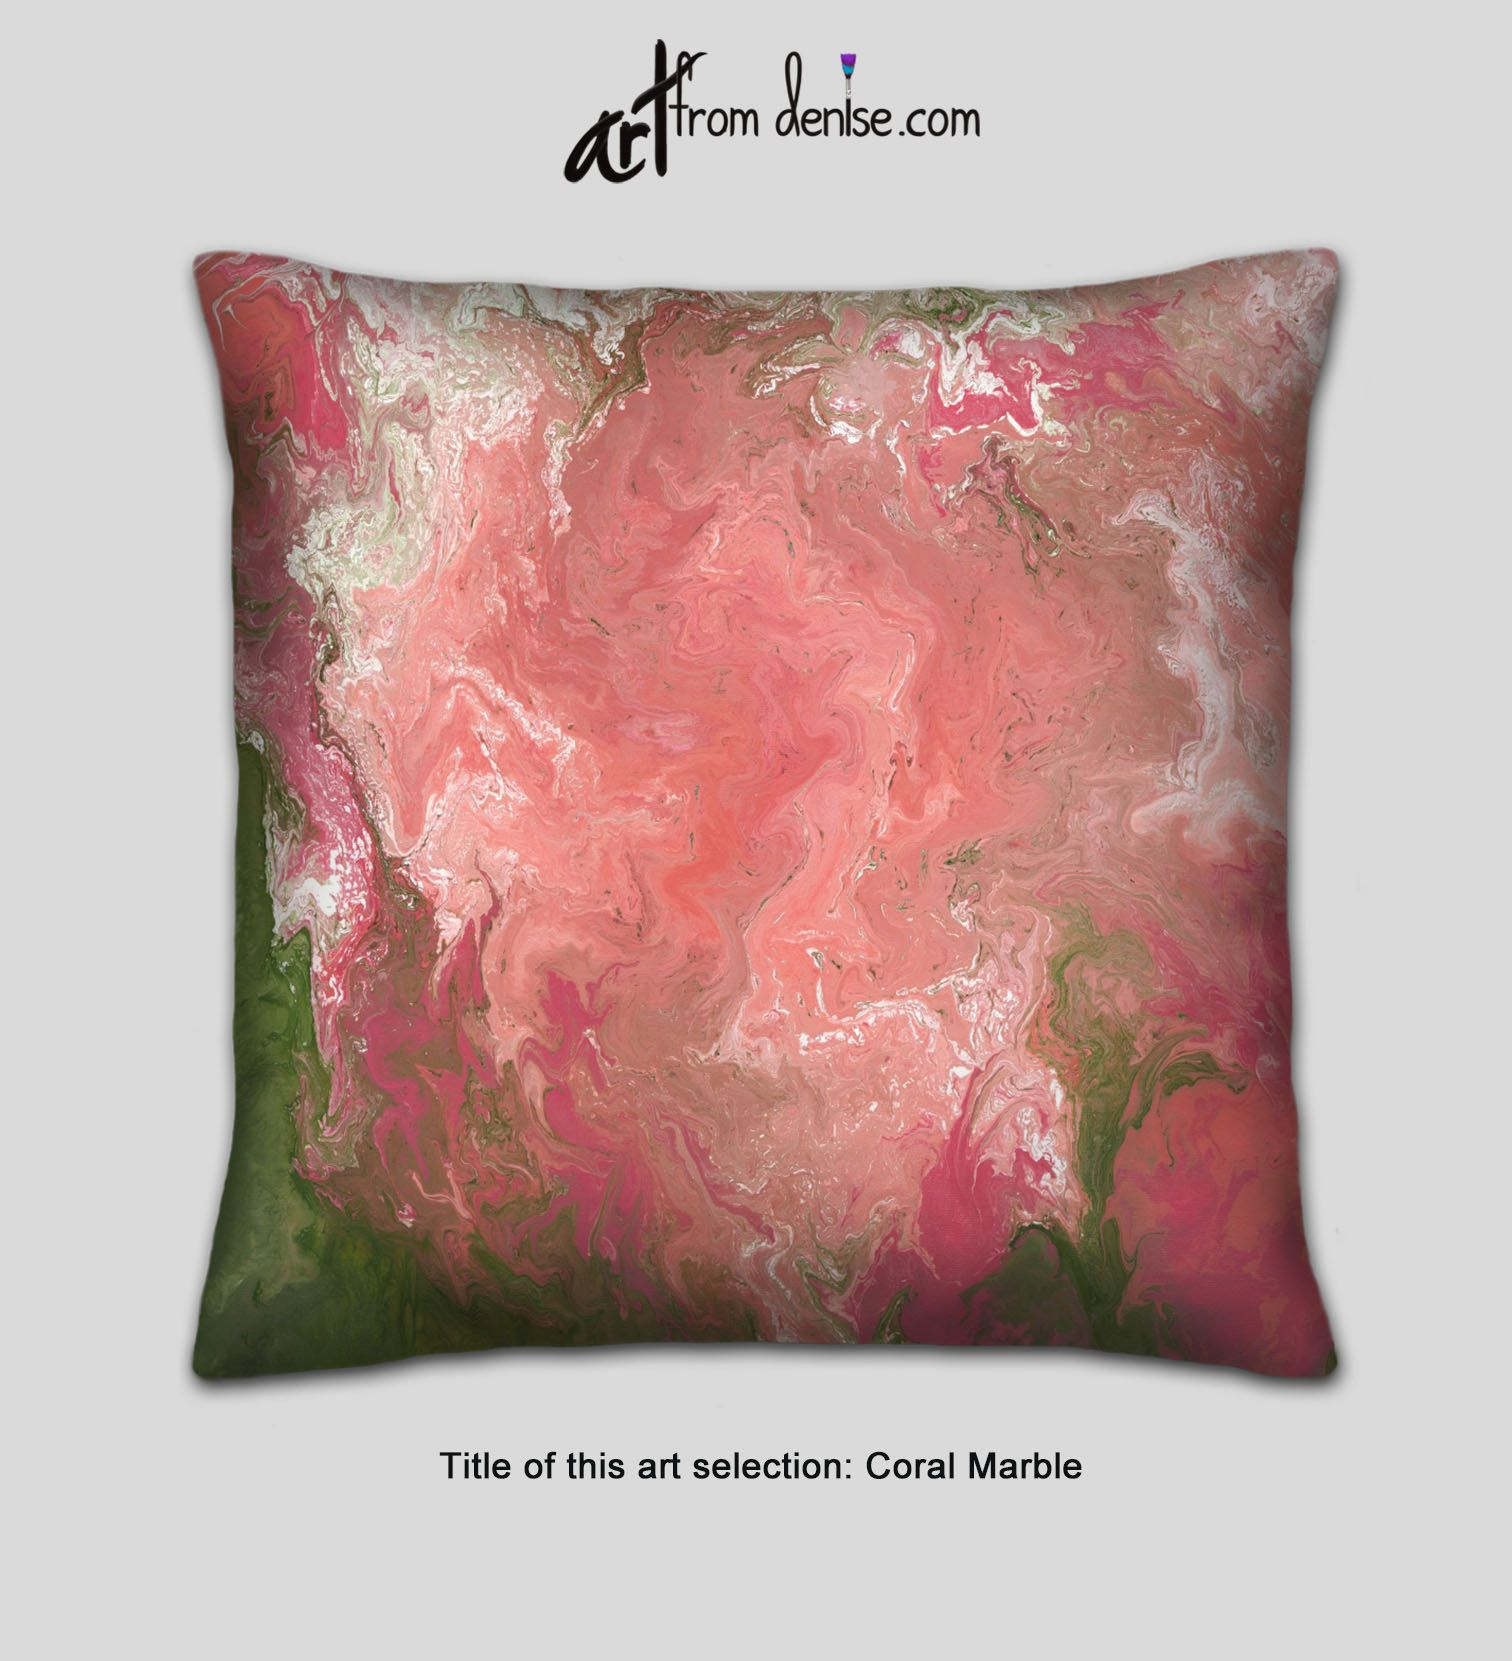 Coral Throw Pillows Small Or Large Decorative Accent Pillow Etsy In 2020 Coral Throw Pillows Couch Pillow Sets Throw Pillows